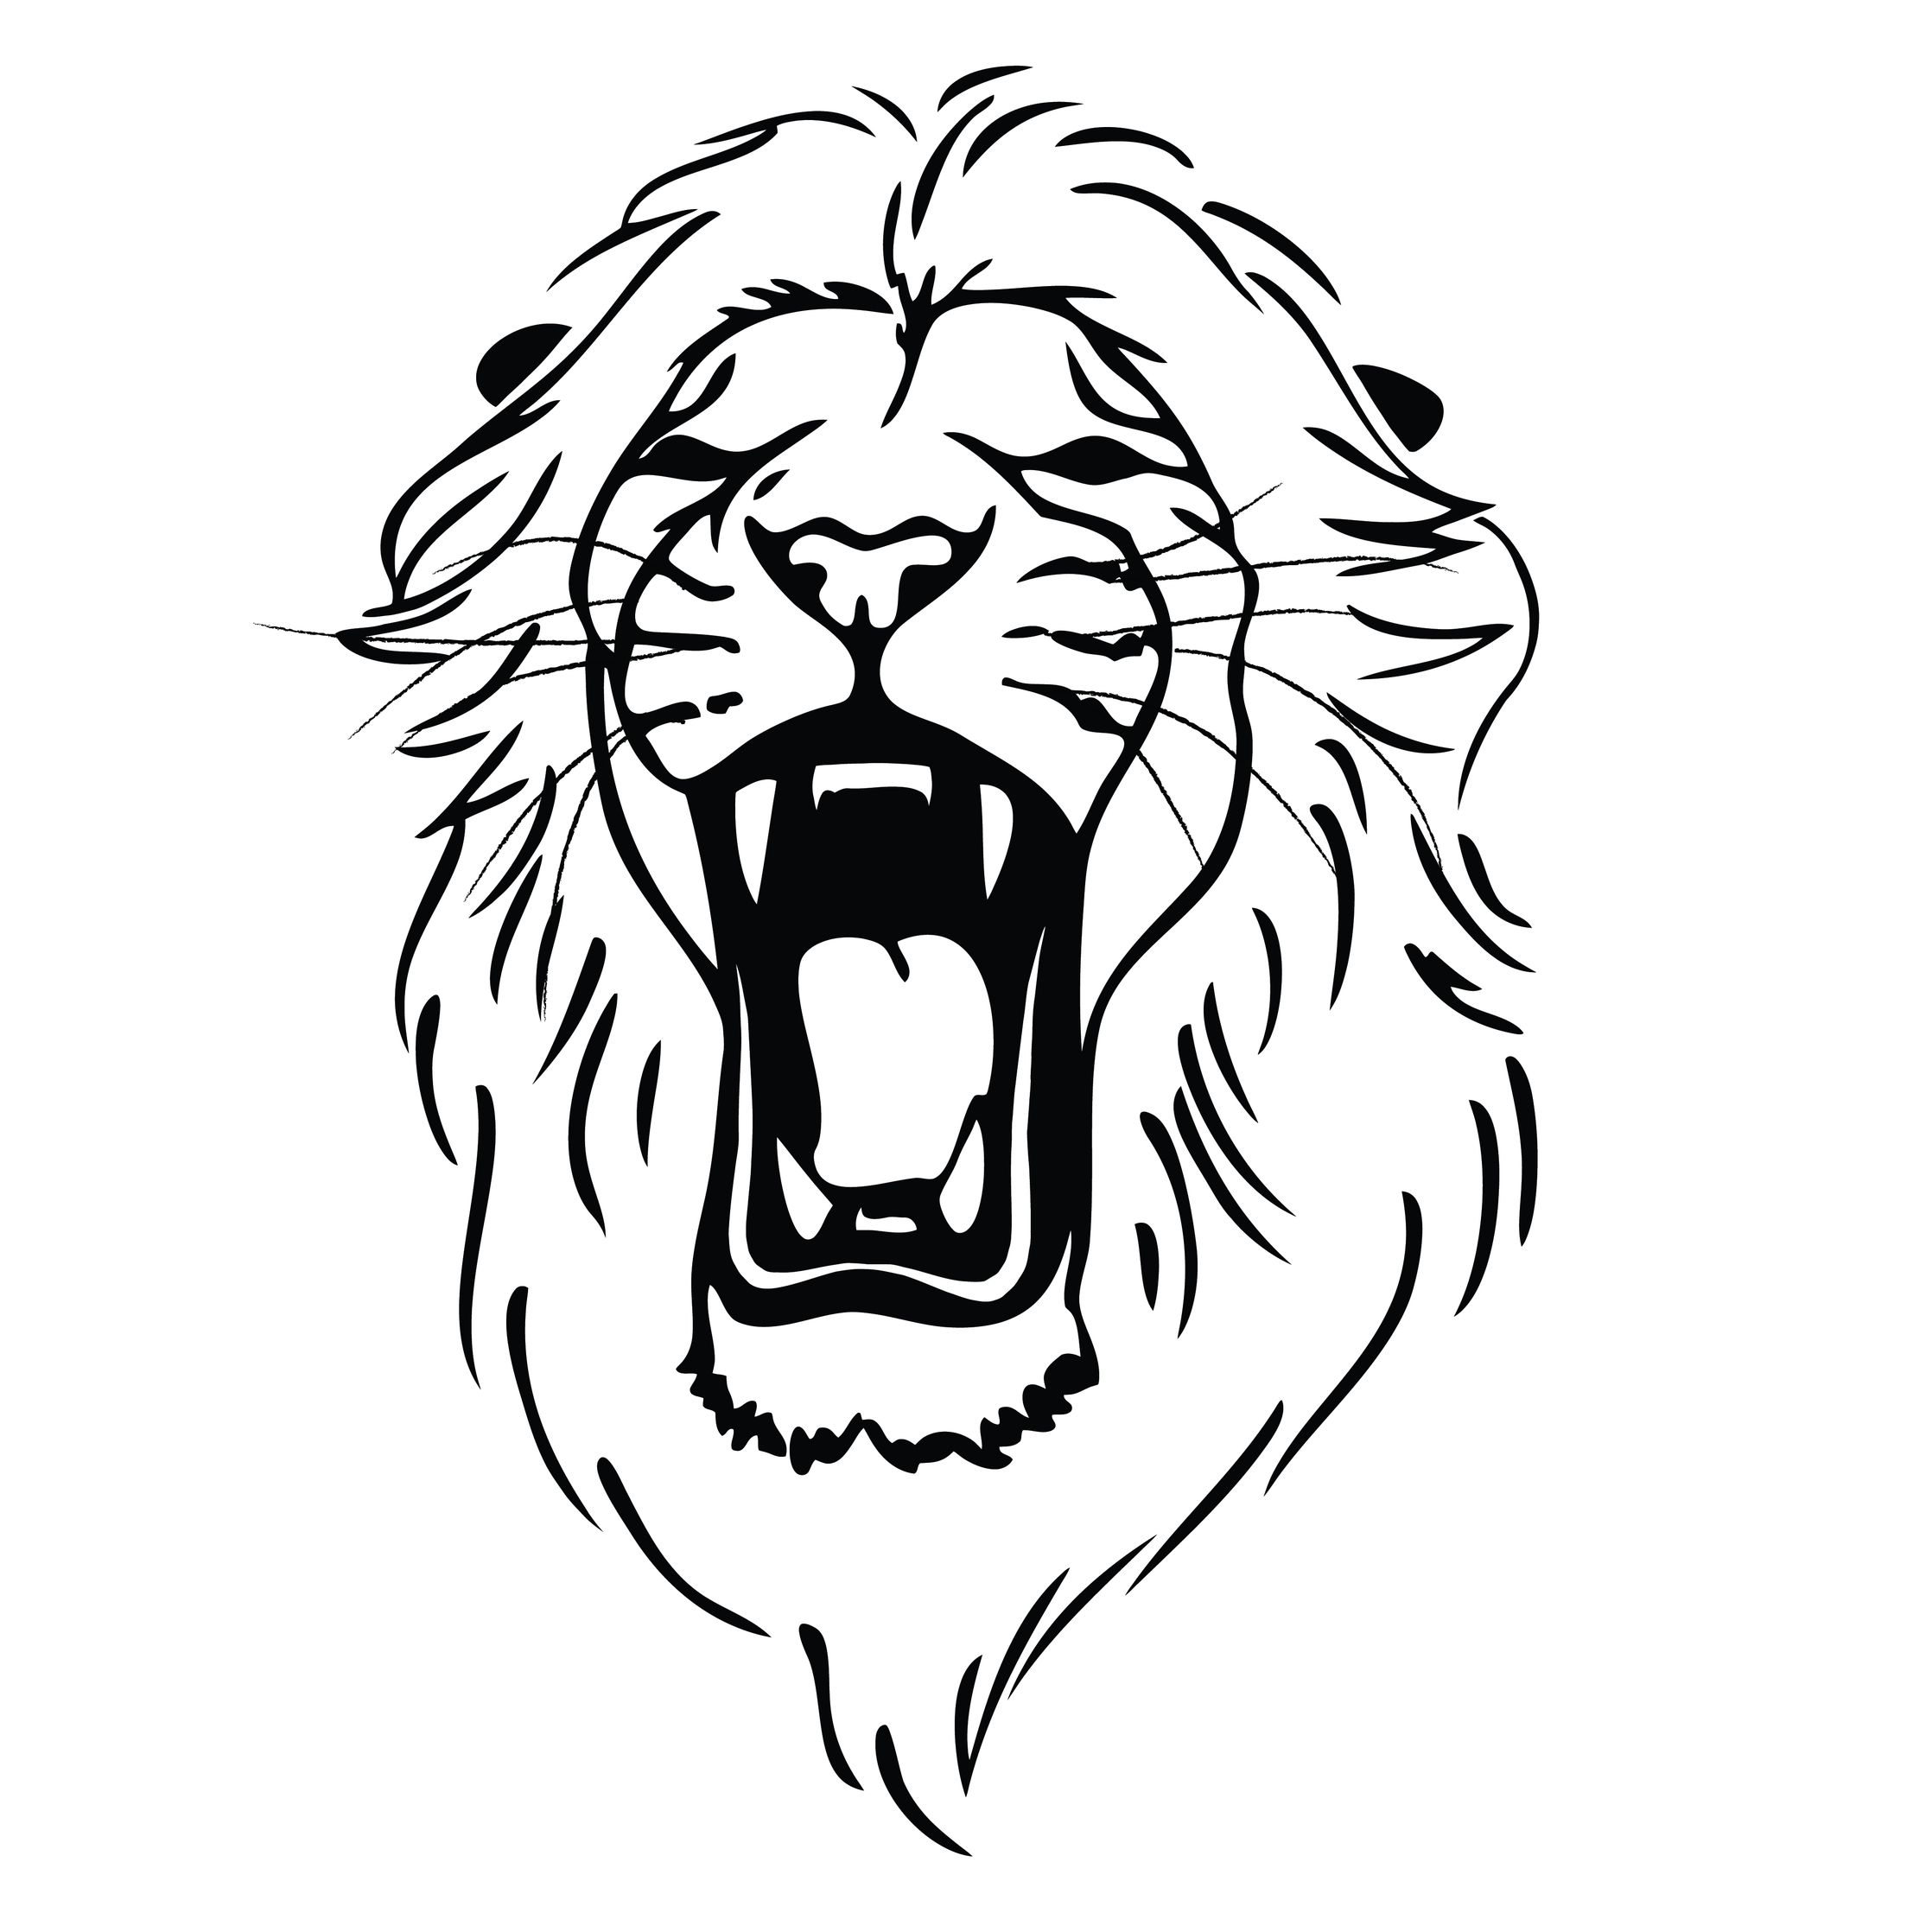 Lion Roaring Drawing | Clipart Panda - Free Clipart Images ... - photo#9